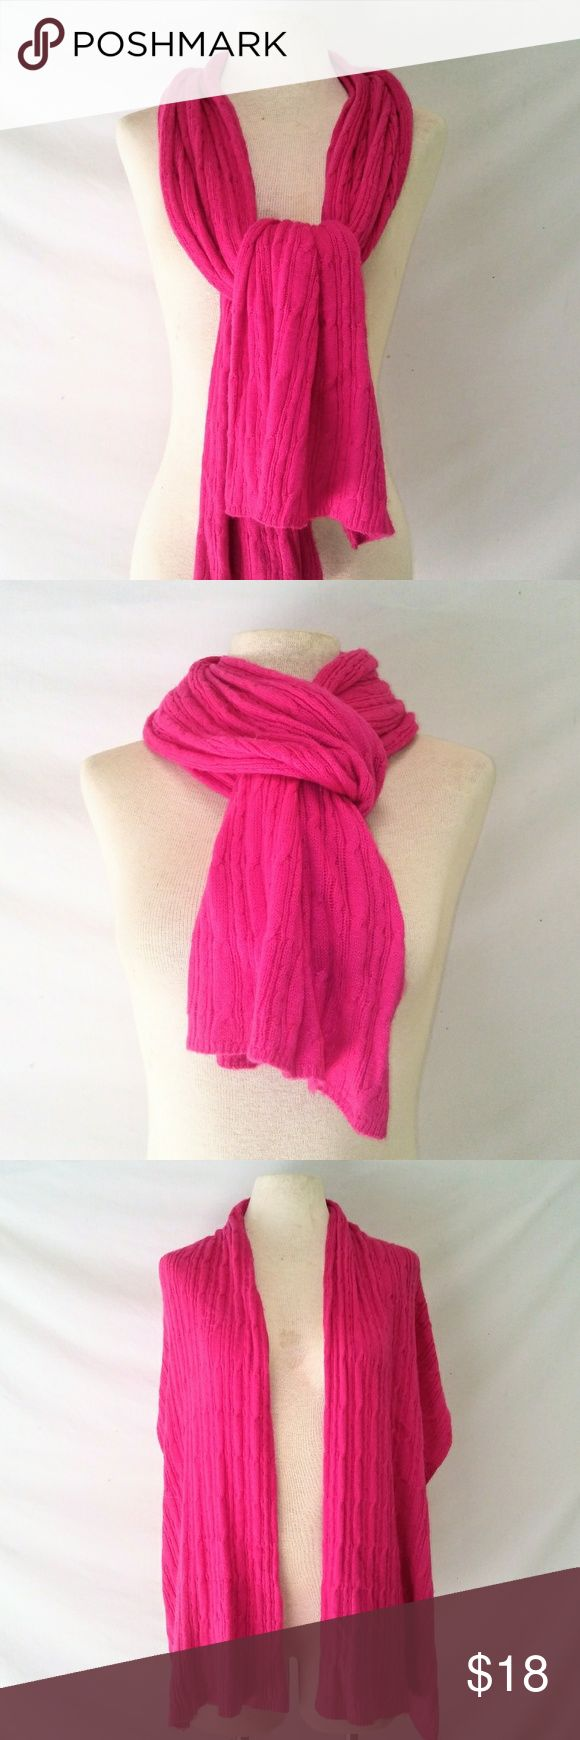 #hundredsofscarves: OLD Navy Cable Knit Scarf XL Bright Pink Super Soft Rayon Blend Cable Knit Warm Winter Scarf by Old Navy. In excellent used condition. From a smoke free home. Make an offer! BUNDLE & Automatically Get 20% Off on 2+ Items.  New Feature Alert: Bundle one or more items and I'll make you a customized awesome offer! Just bundle and wait for my offer... Up to 40% off - the bigger the bundle the bigger the savings! *2017 SUGGESTED USER* Old Navy Accessories Scarves & Wraps